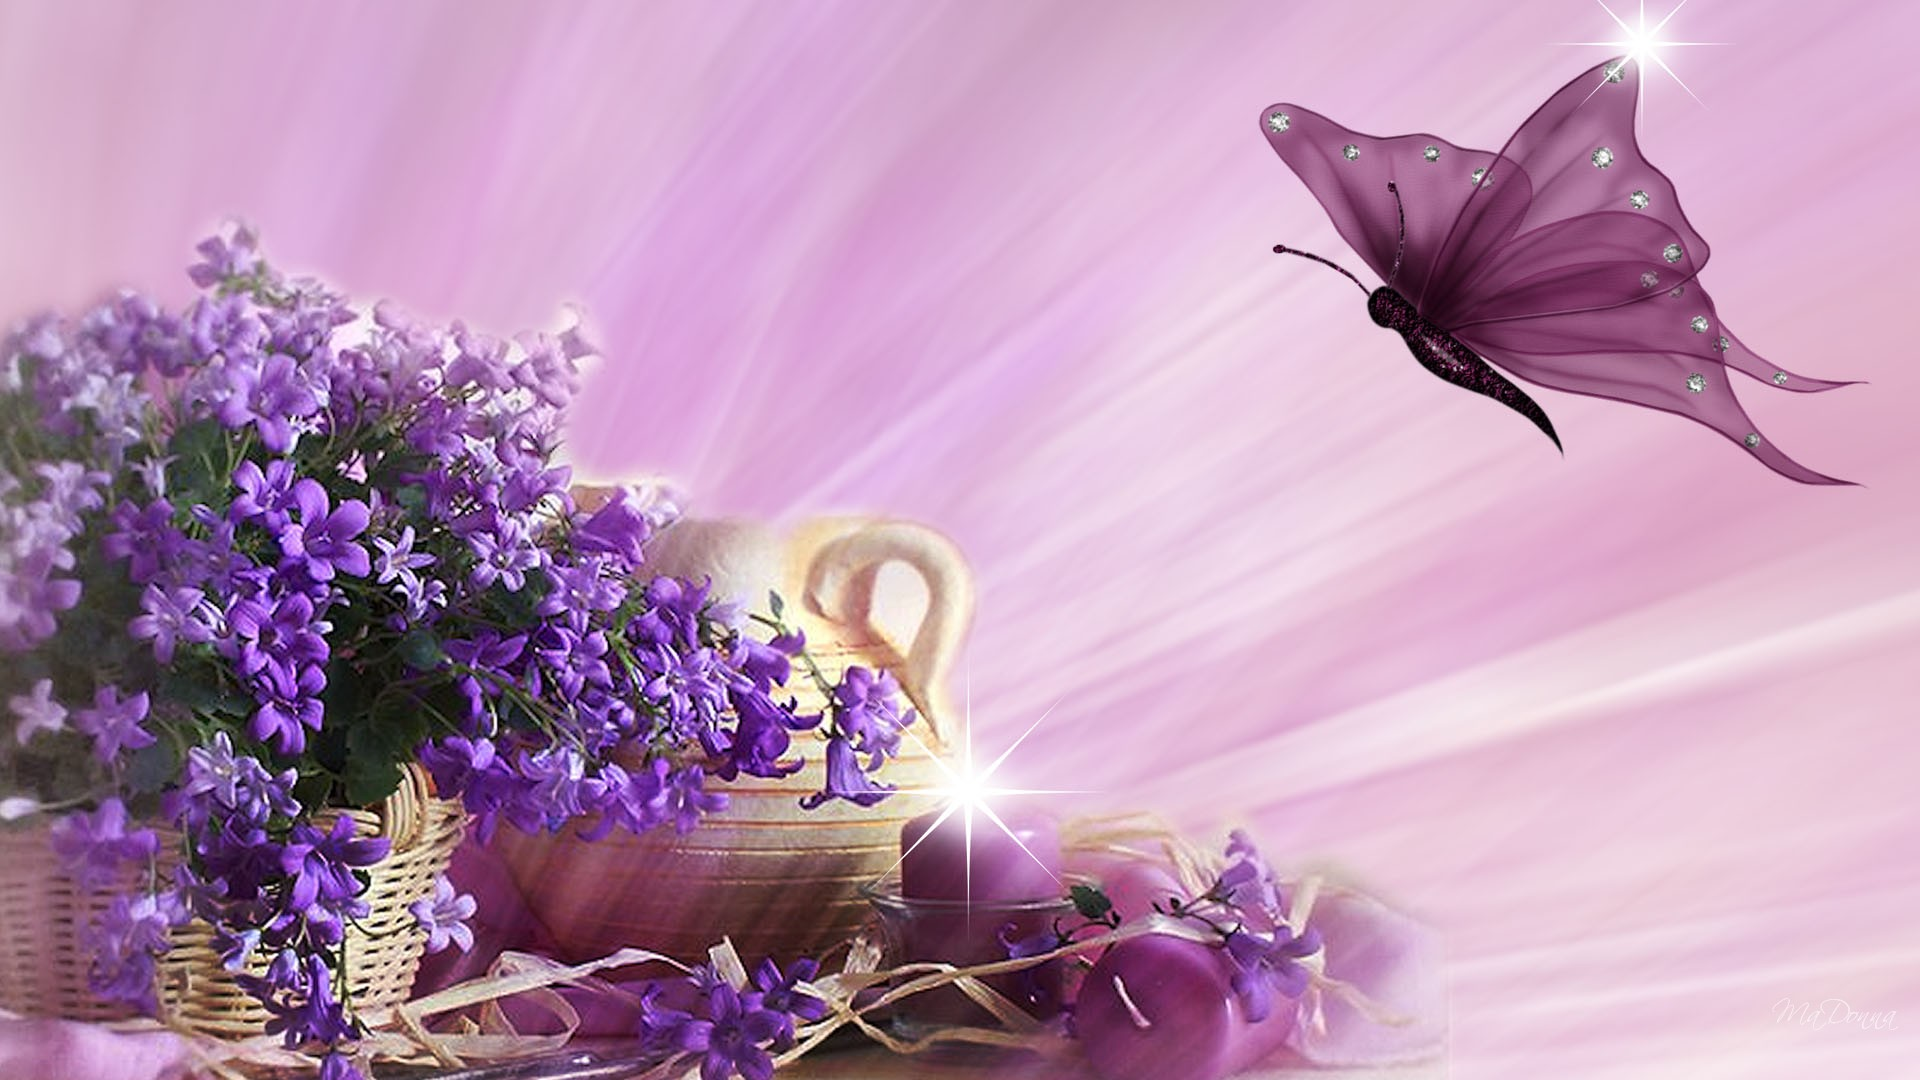 background PC backgrounds Flowers and butterflies 1920x1080